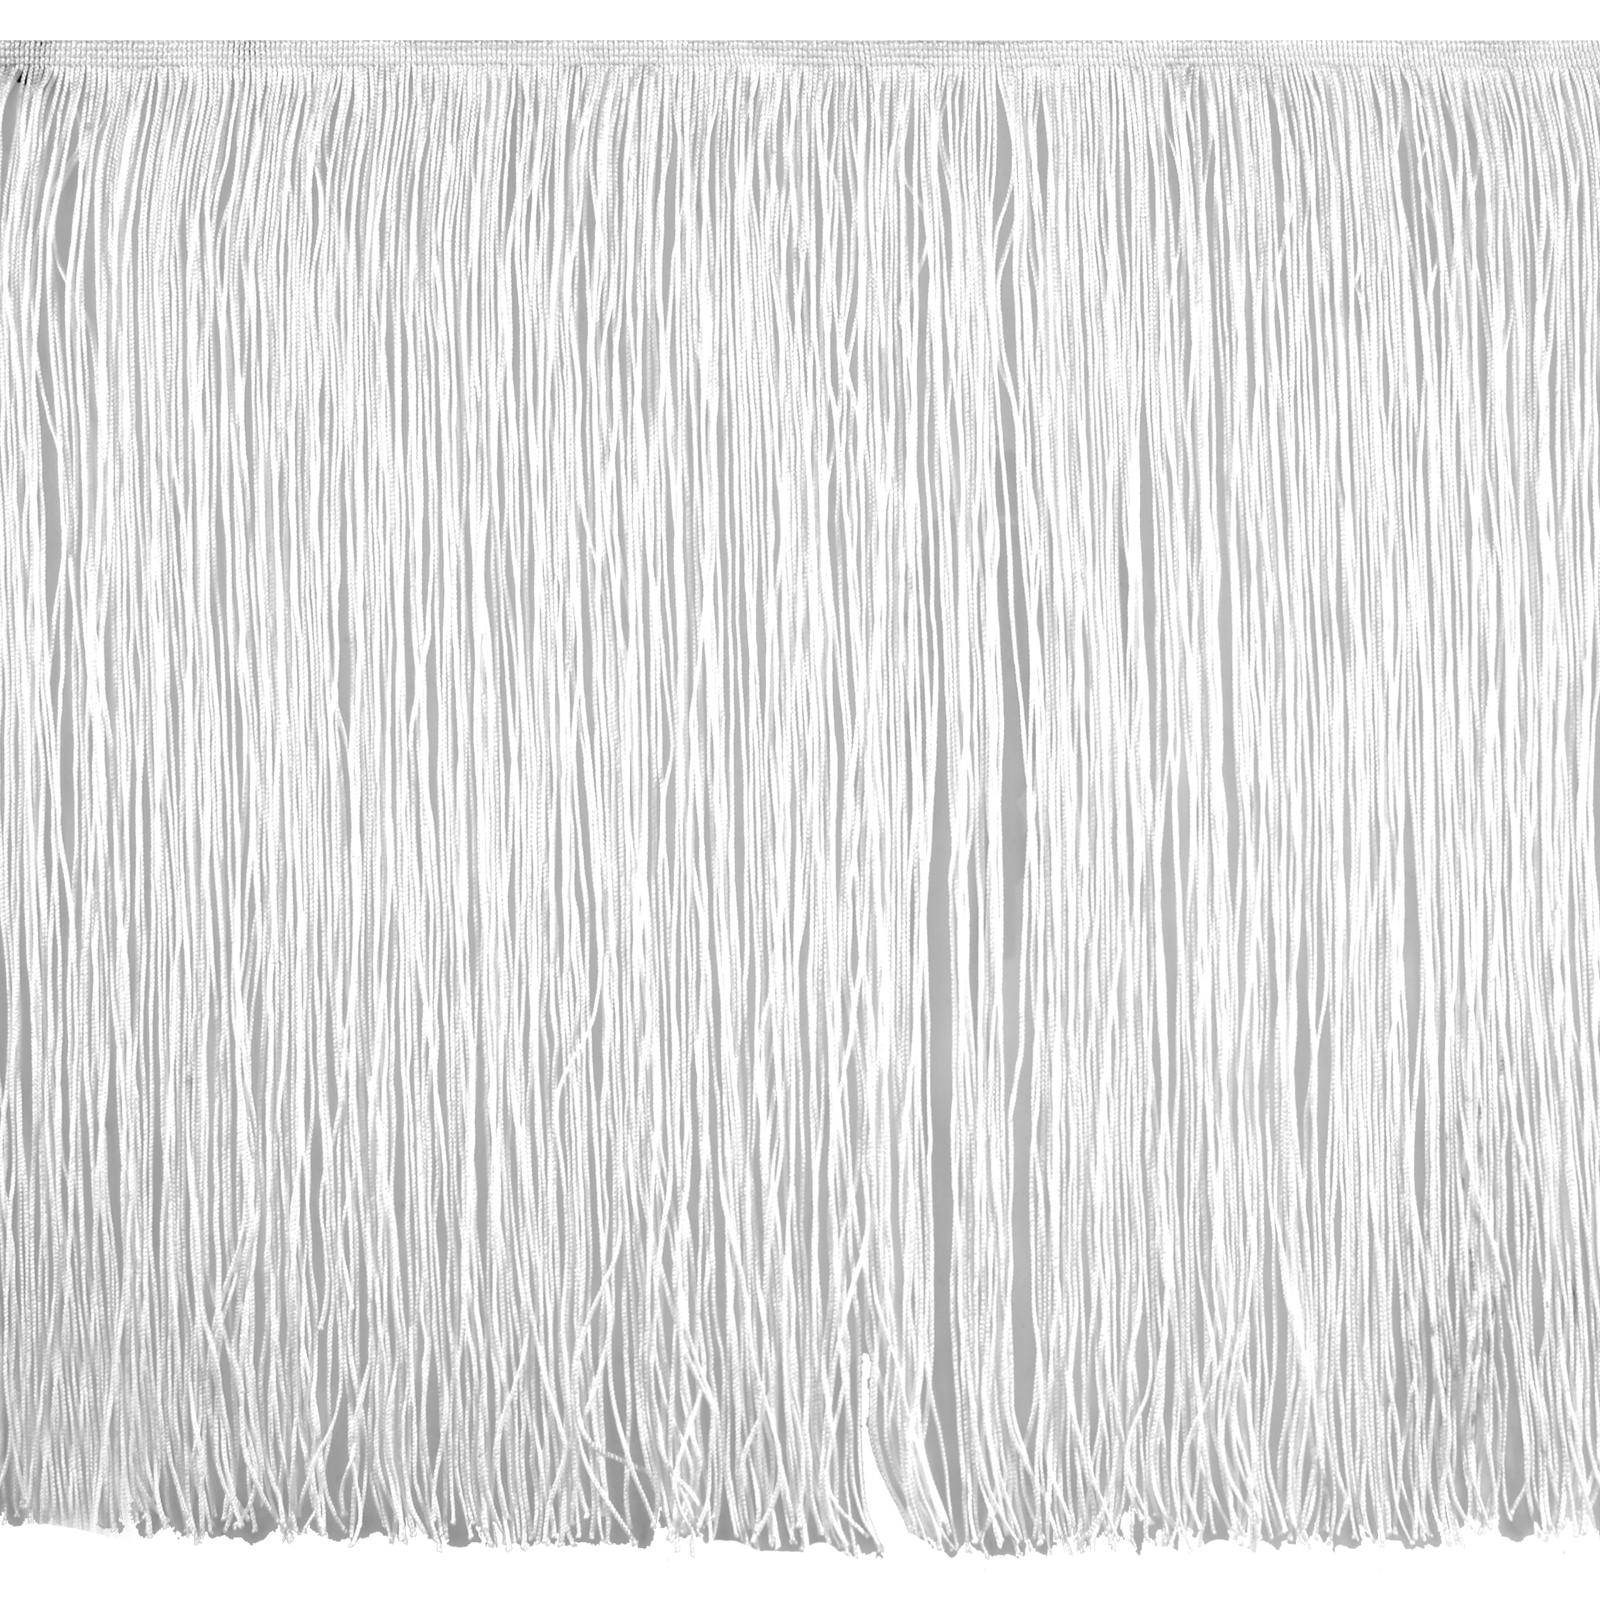 18'' Chainette Fringe Trim White by Expo in USA